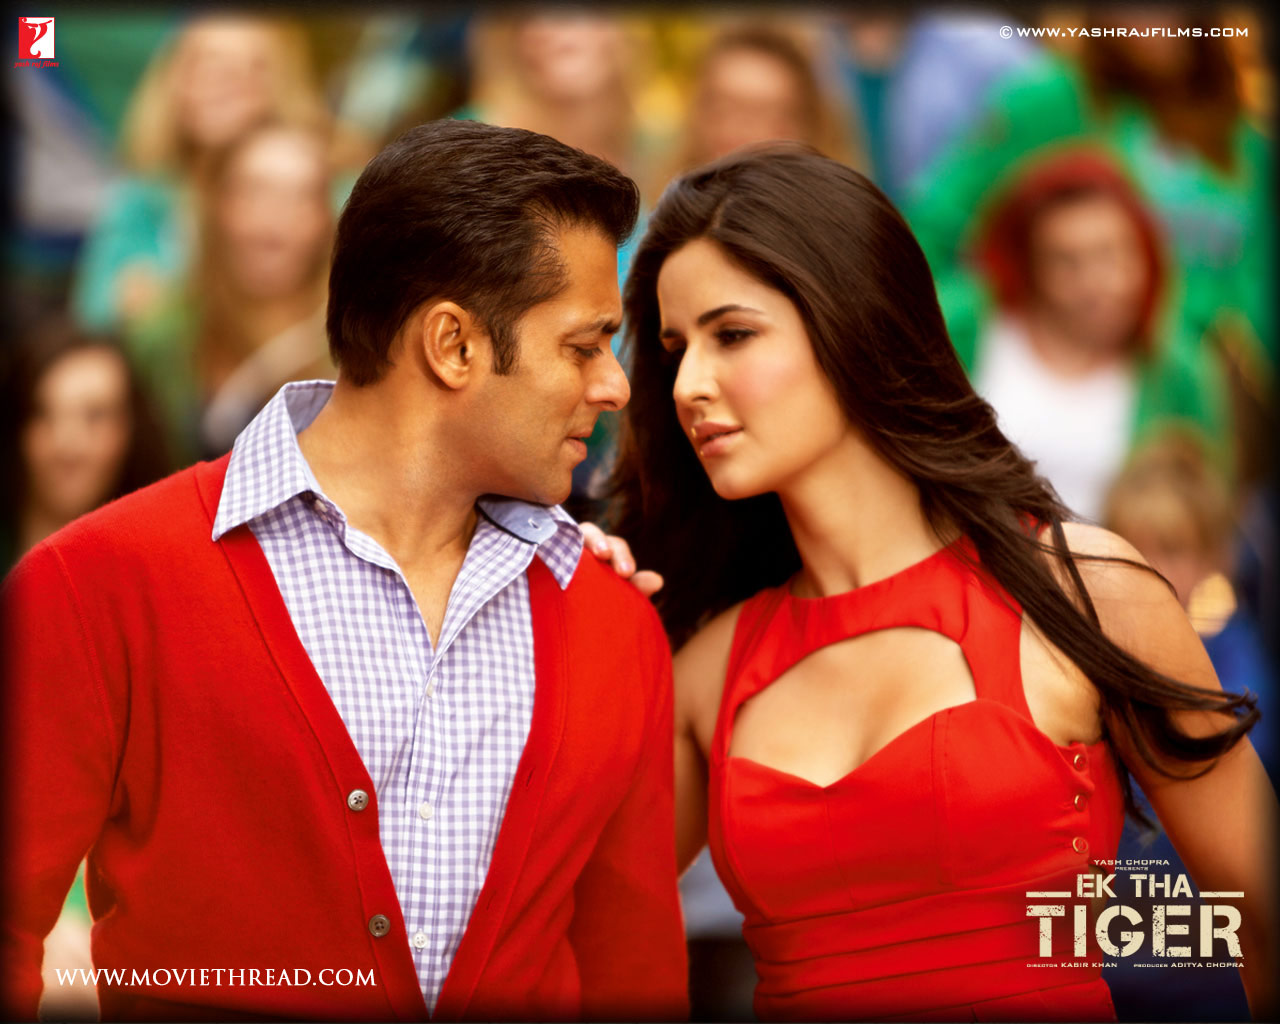 Download Hindi Movie Ek Tha Tiger (2012) | Free Download Hindi Movies